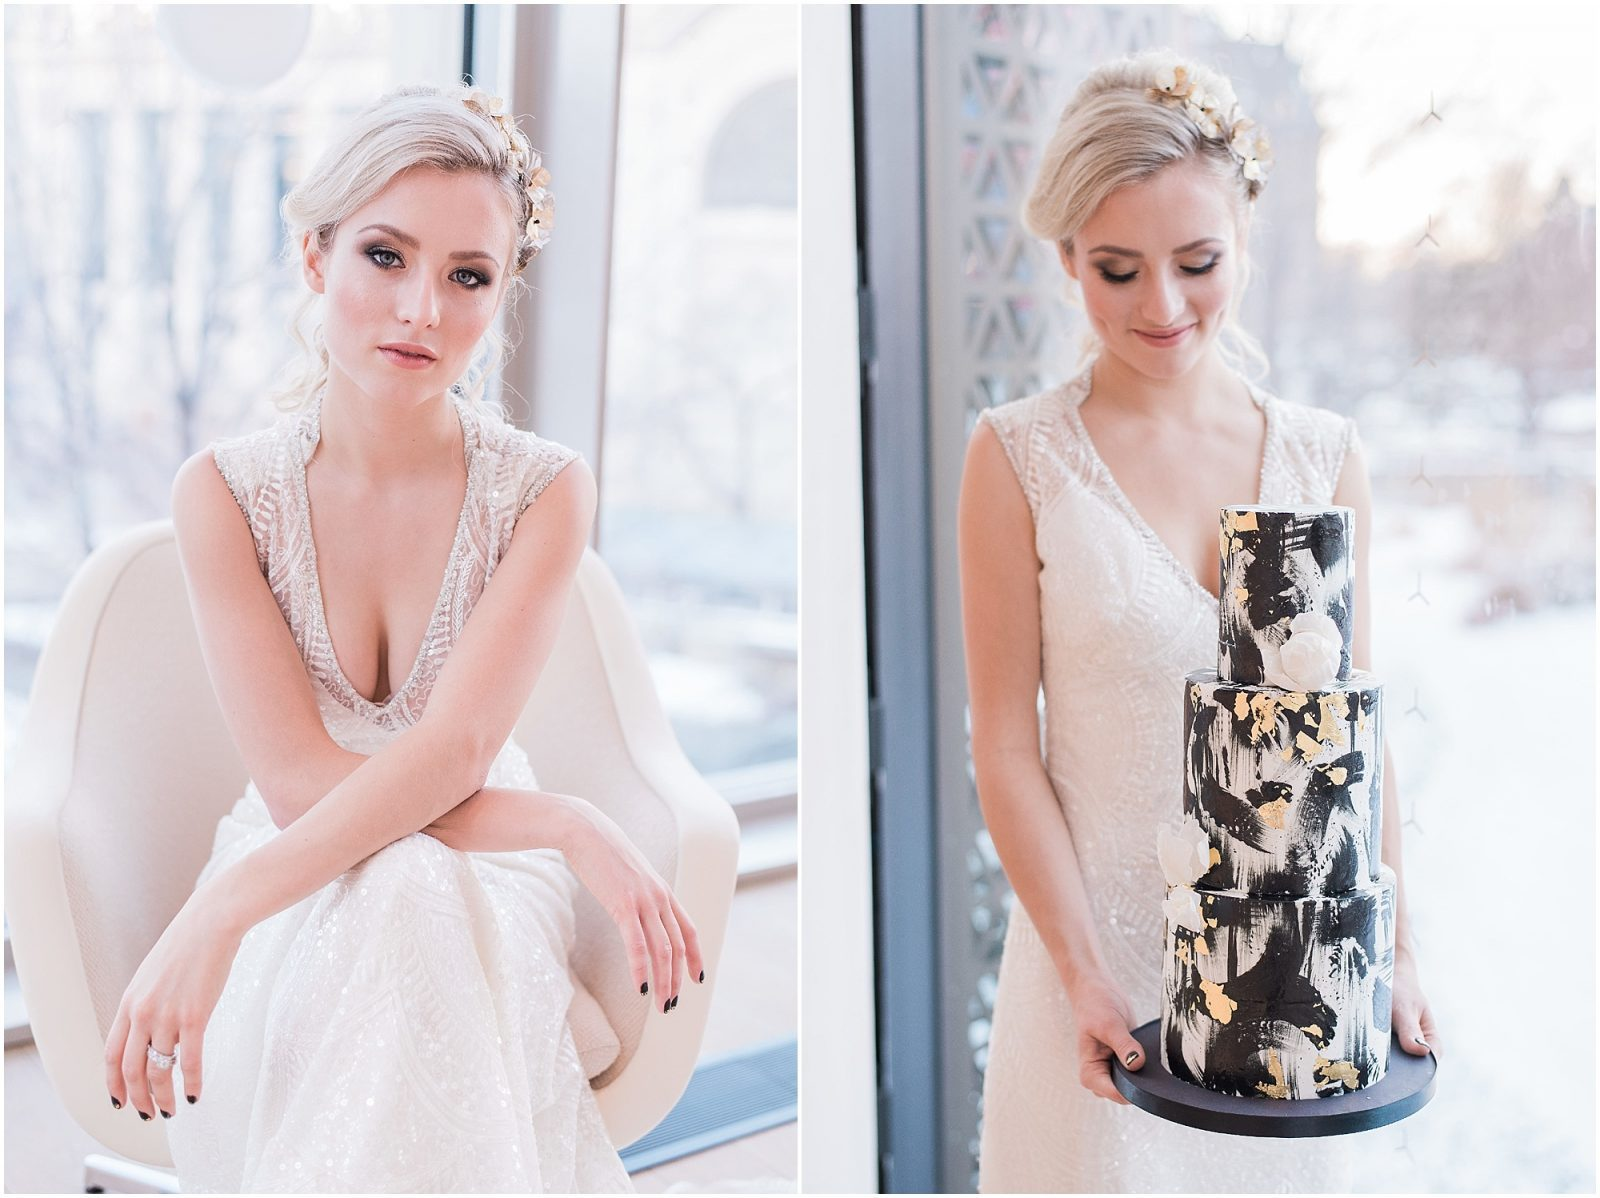 Wedding O'Born Room NAC Ottawa - New Years Glam Wedding Inspiration - bright and airy ottawa wedding photographer - elegant bride holding cake